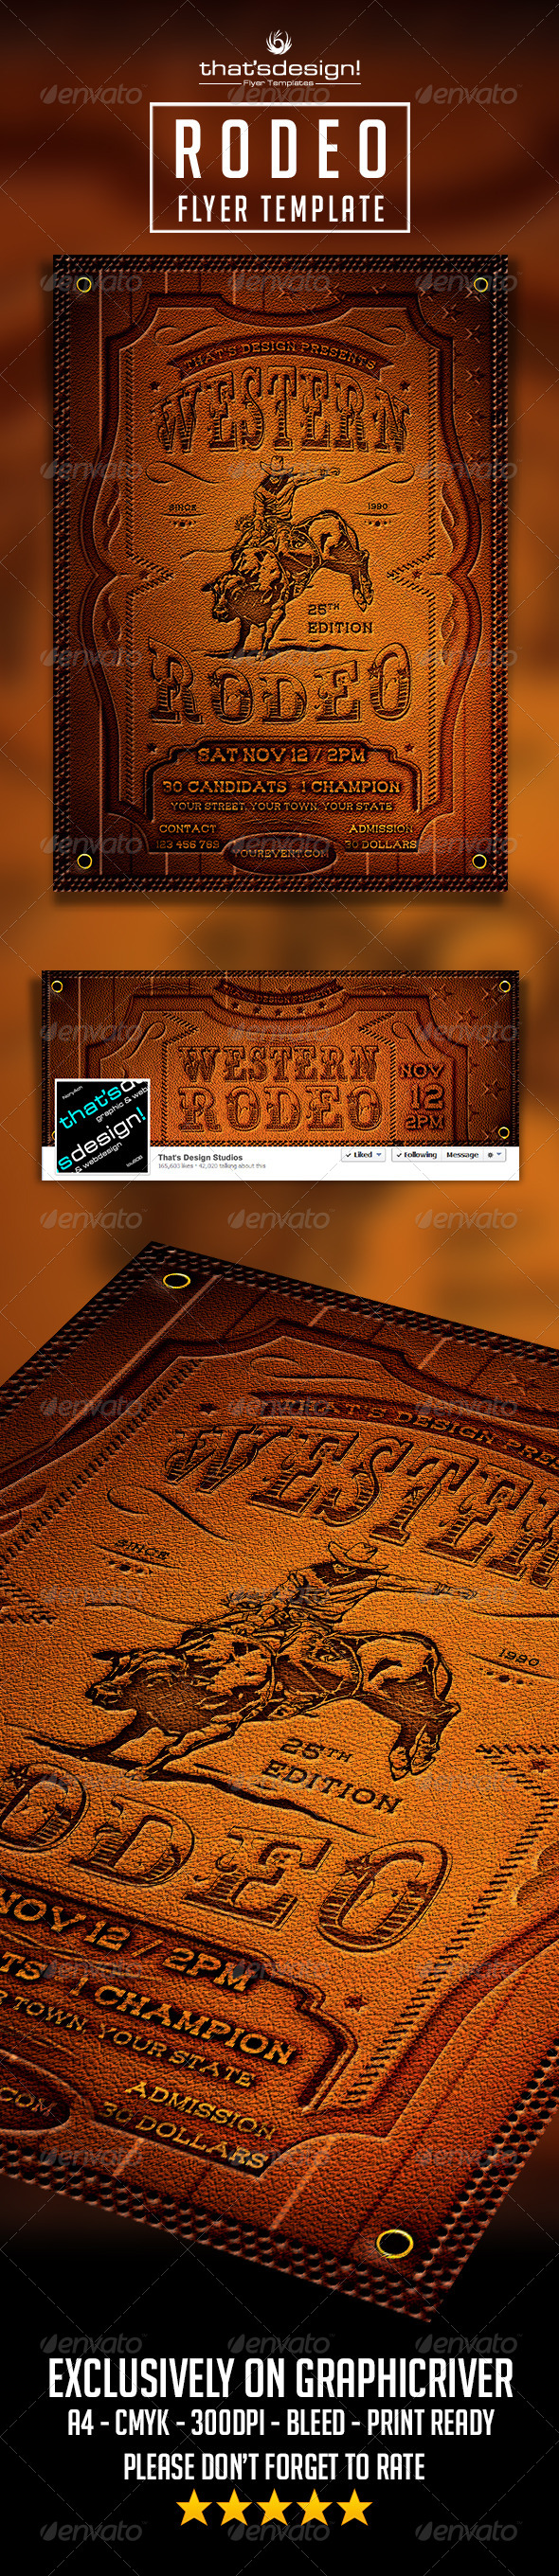 Rodeo Flyer Template - Events Flyers